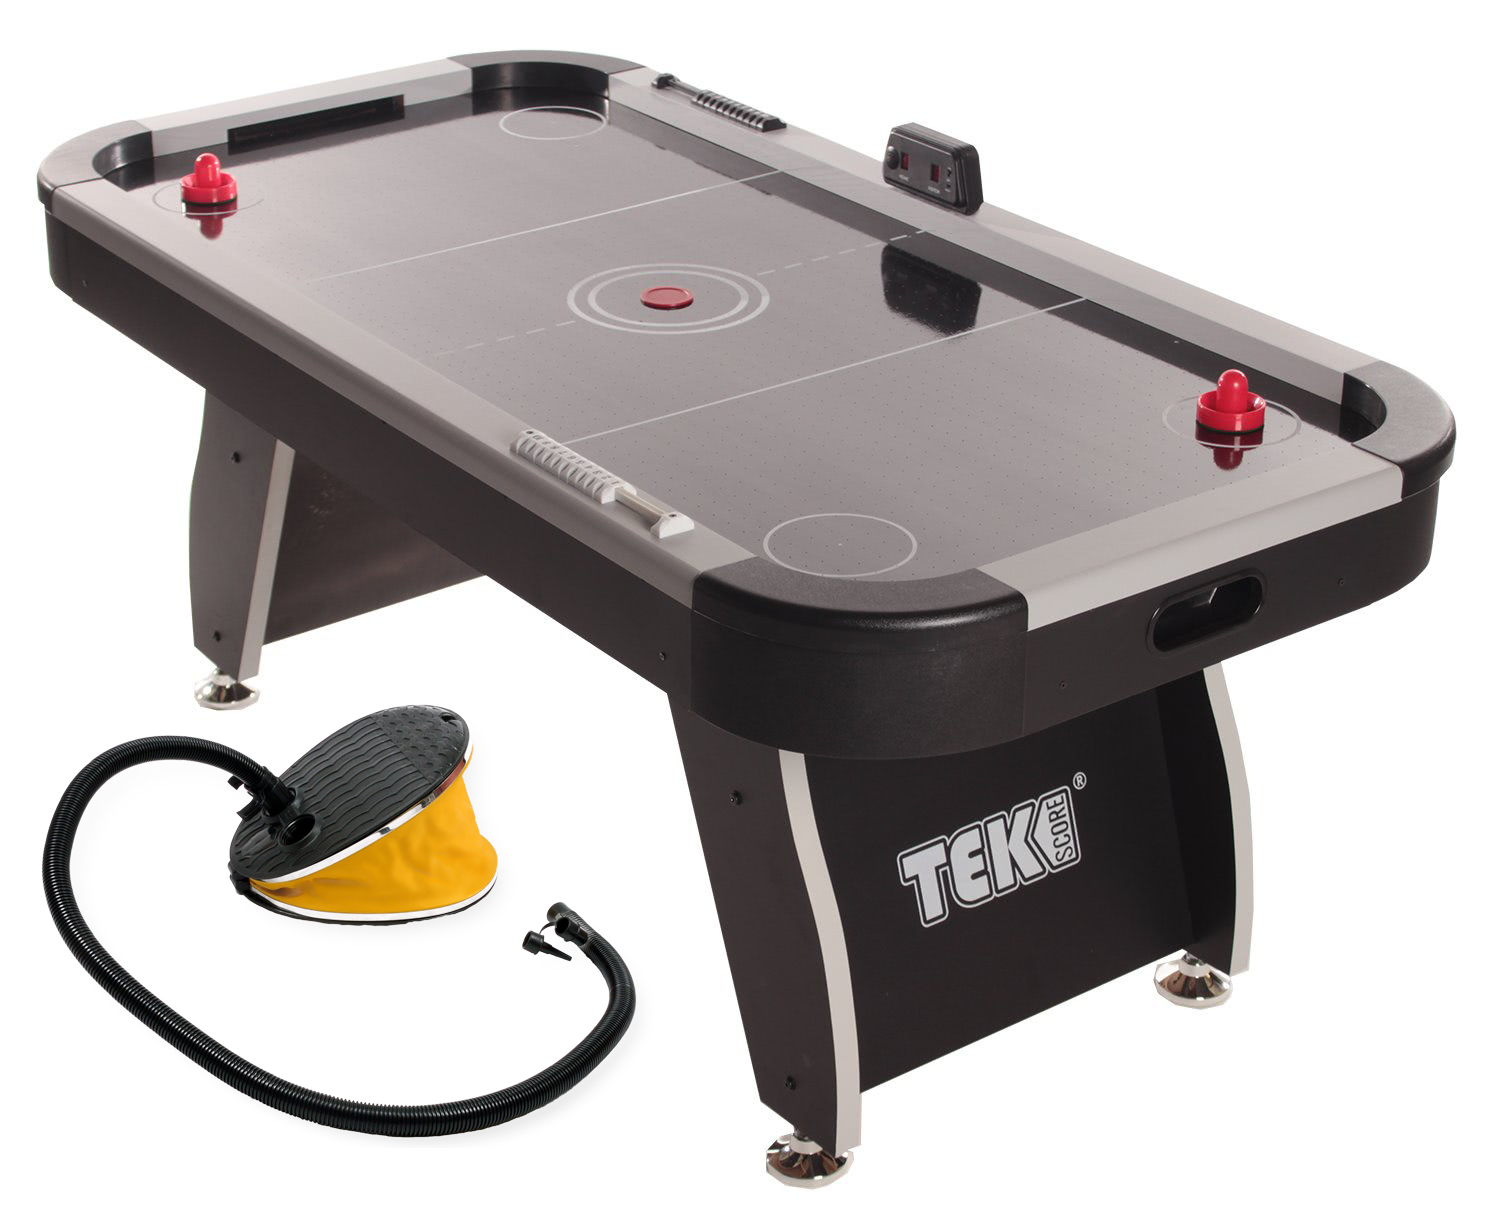 Merveilleux Infla Table Foot Pump Portable Air Hockey Table